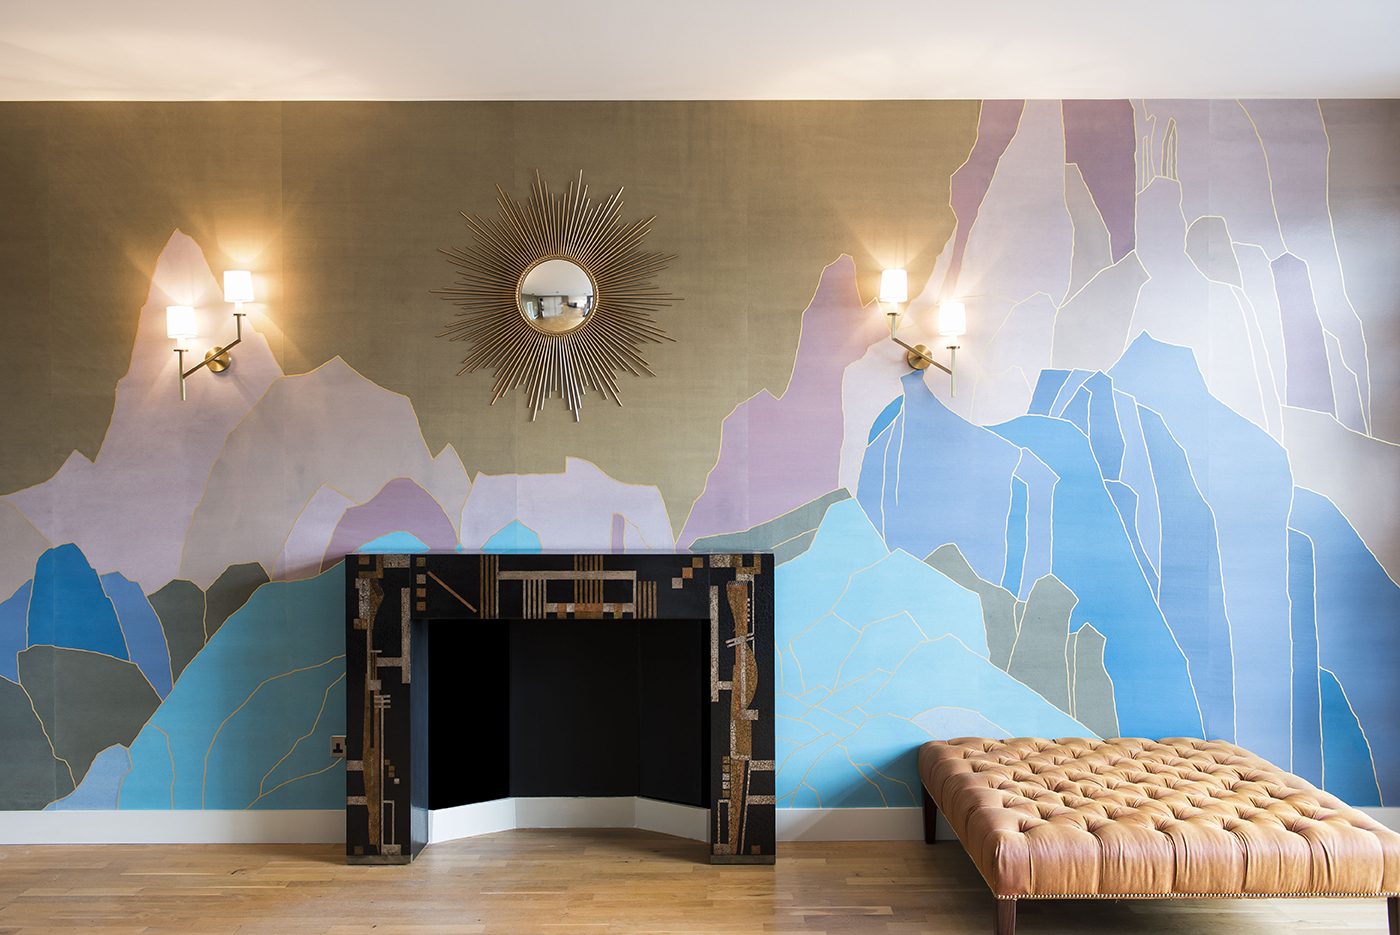 How To Wrap A Room In Art | The Luxury of Handpainted